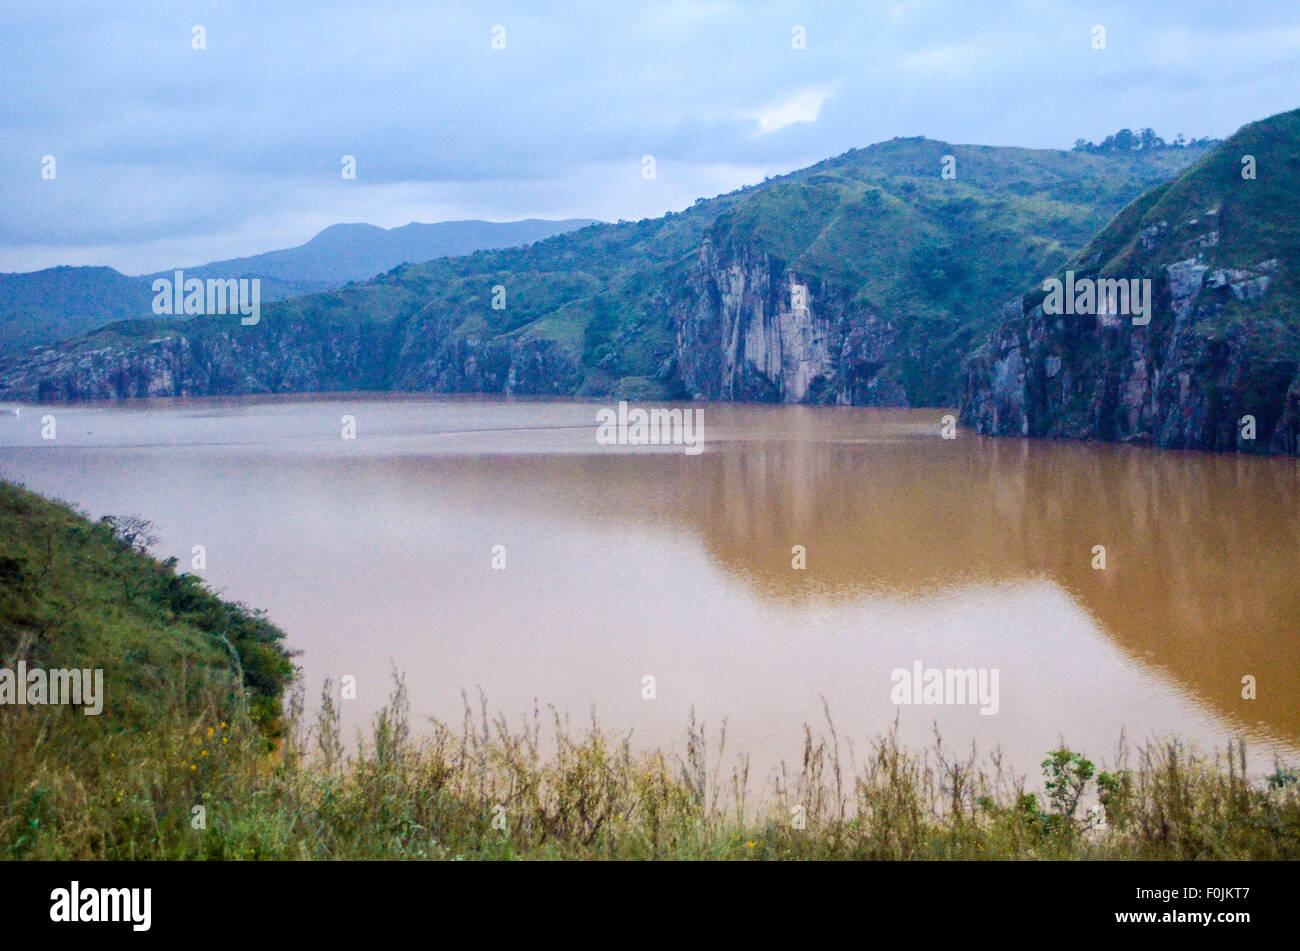 Lake Nyos along the Bamenda Ring Road, Northwest, Cameroun / Cameroon, with toxix CO2 (carbon dioxide) emissions - Stock Image